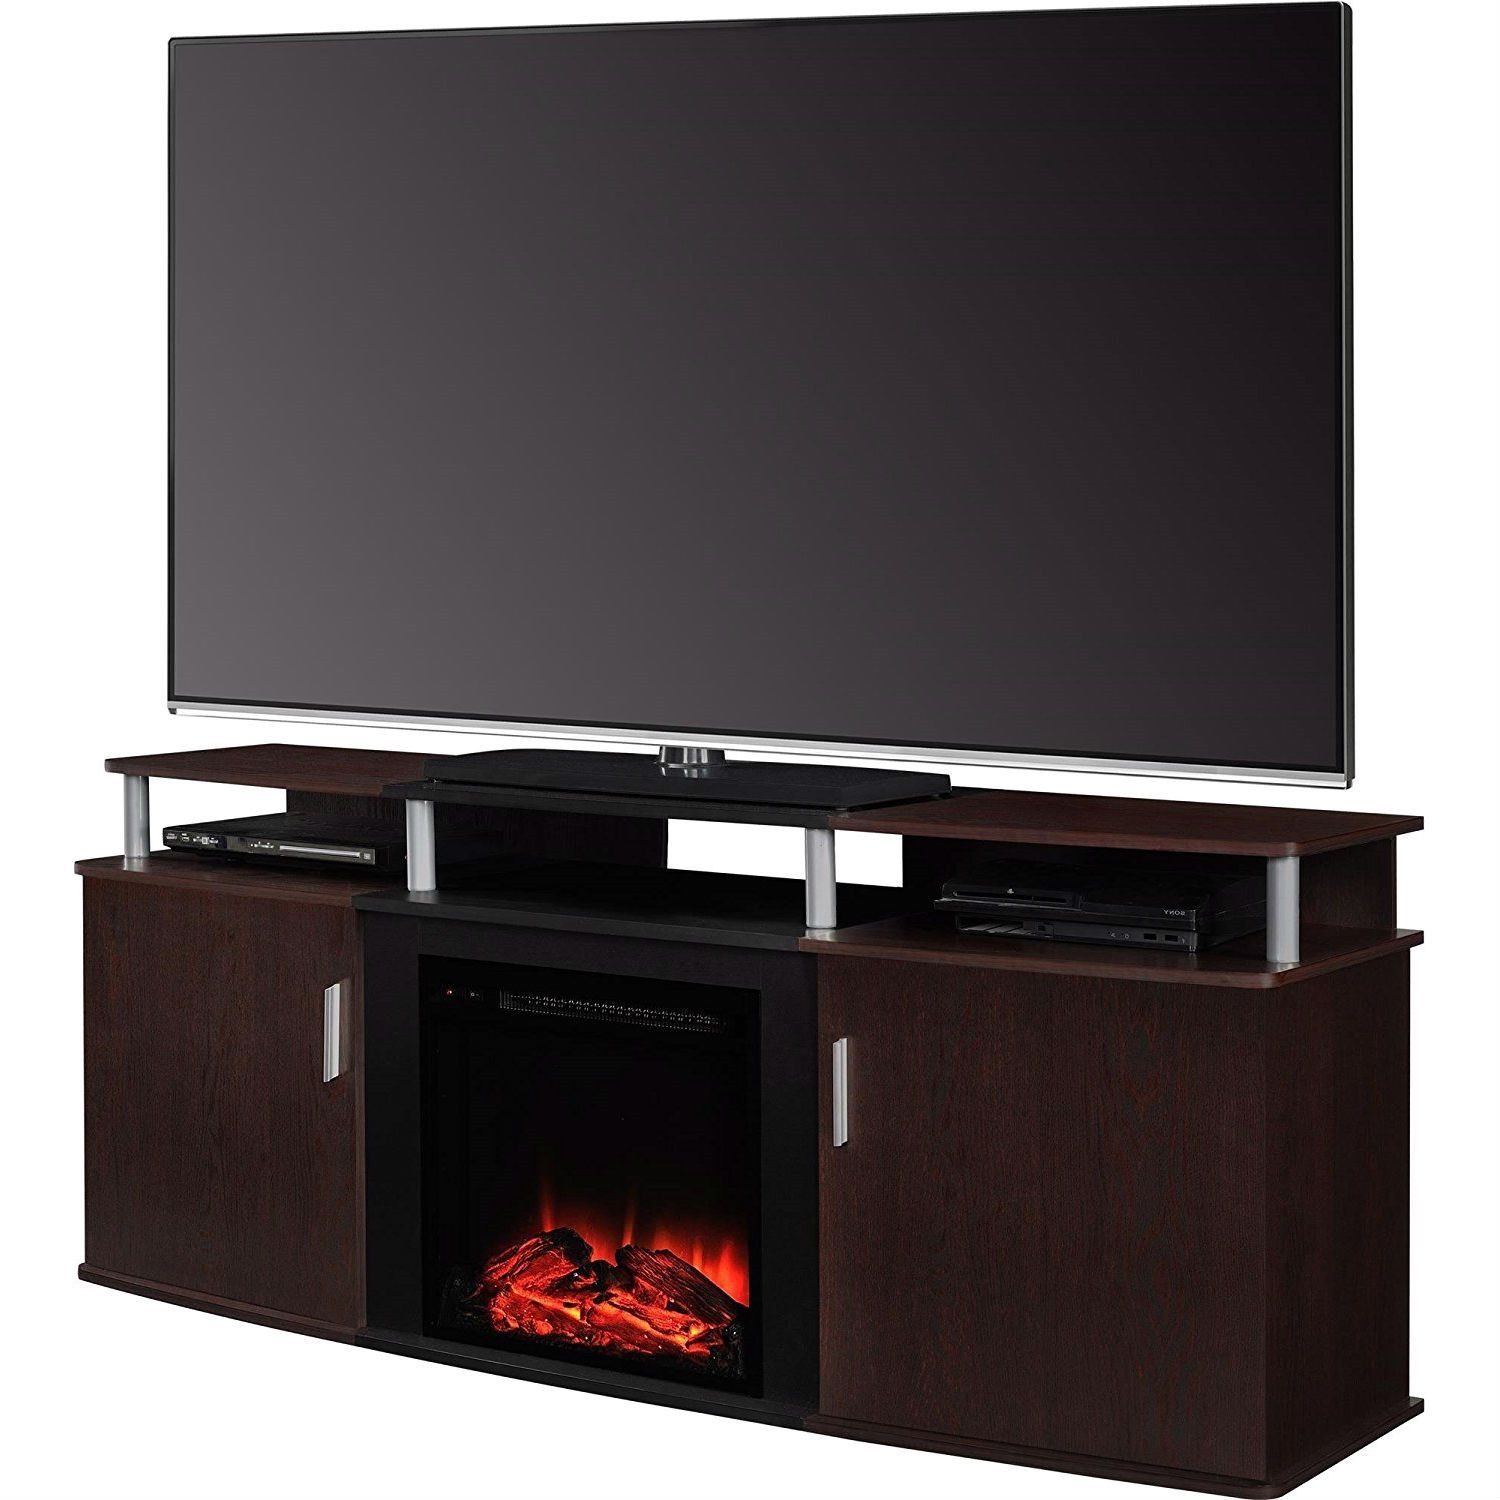 Electric fireplace tv stand and Fireplace …